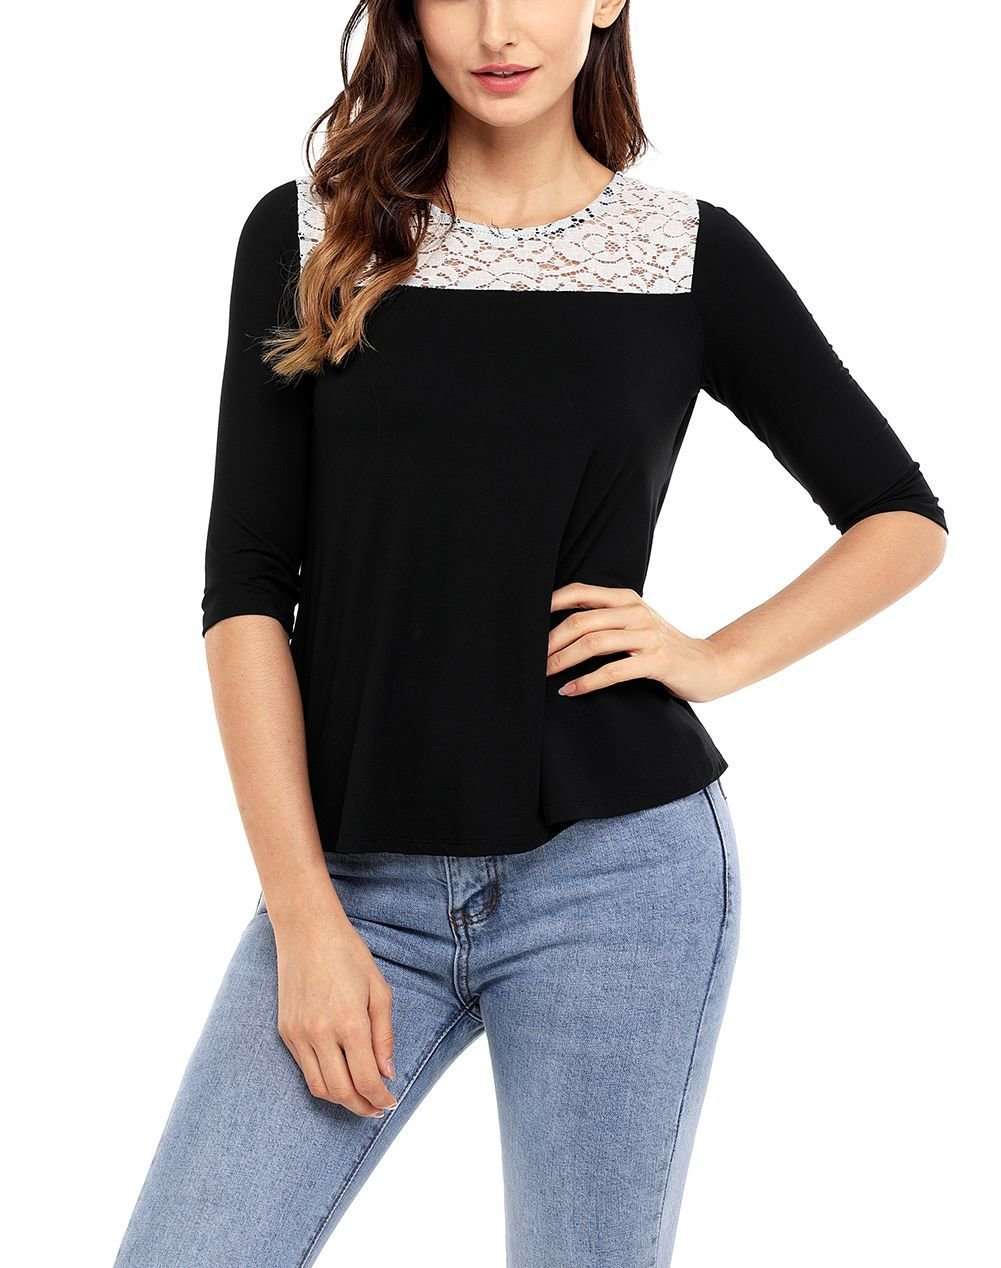 Lace Yoke Tee Top in Large Sizes